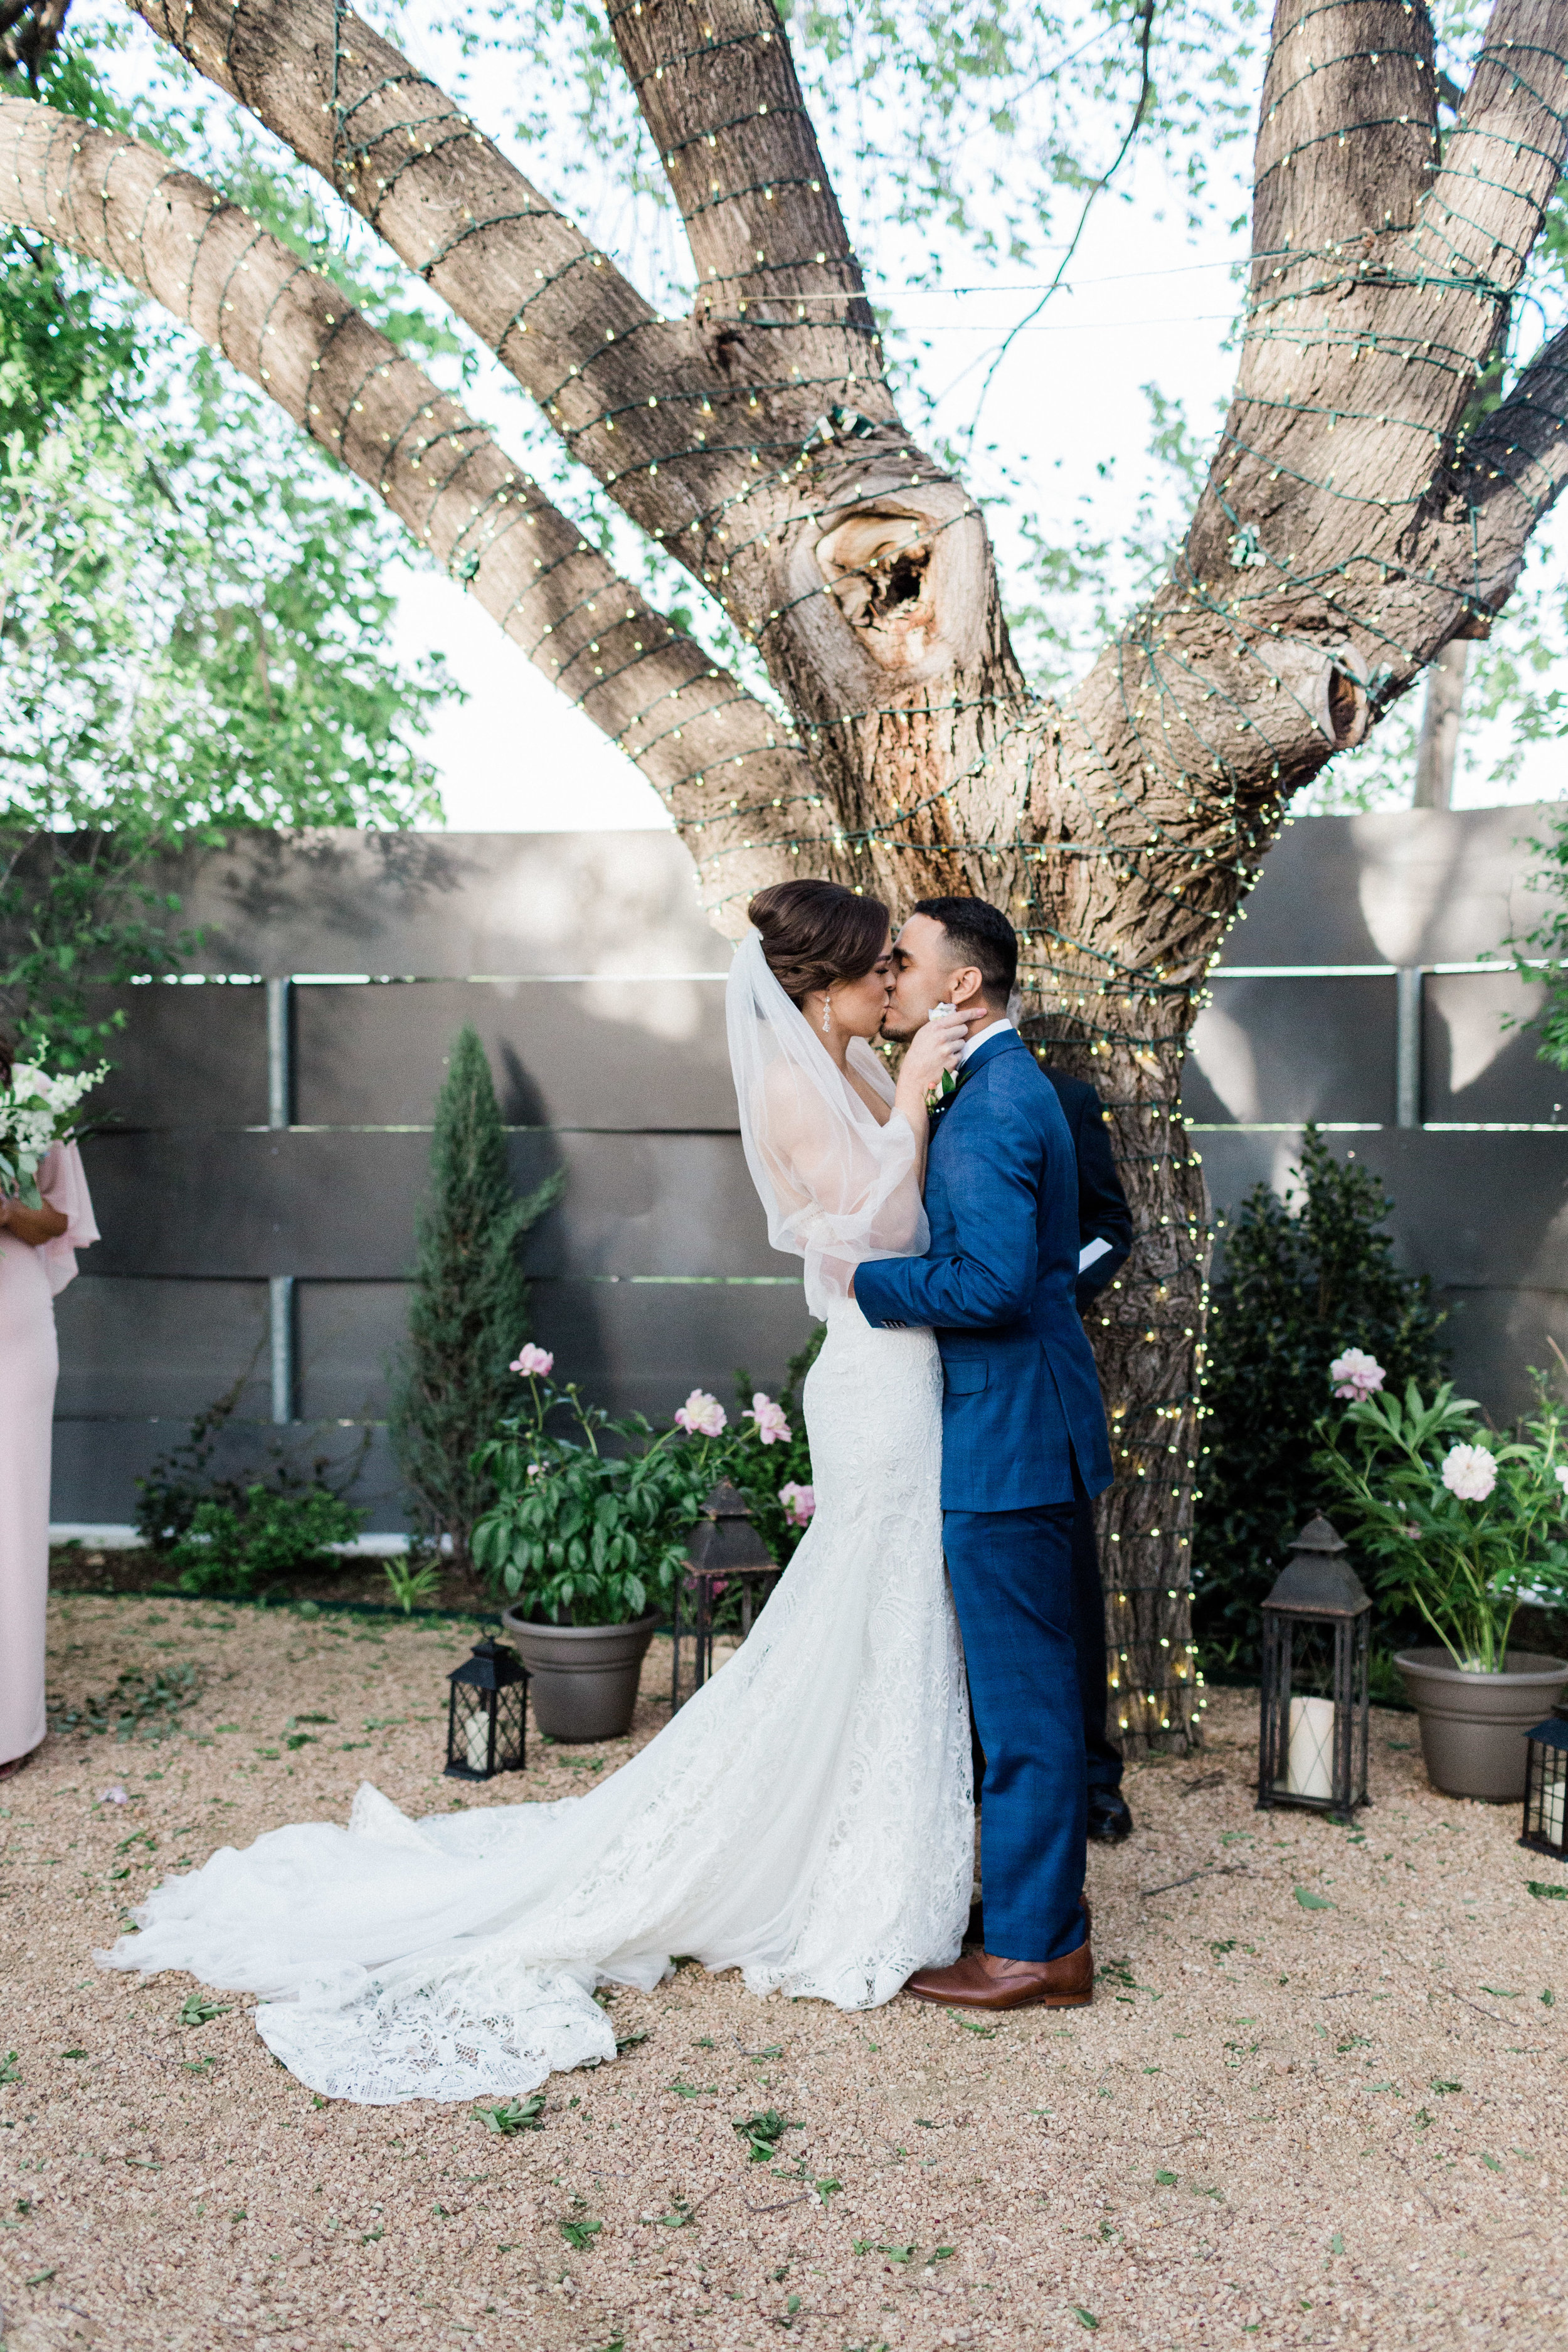 First kiss at Outdoor Wedding in Fort Worth Texas at Artspace 111